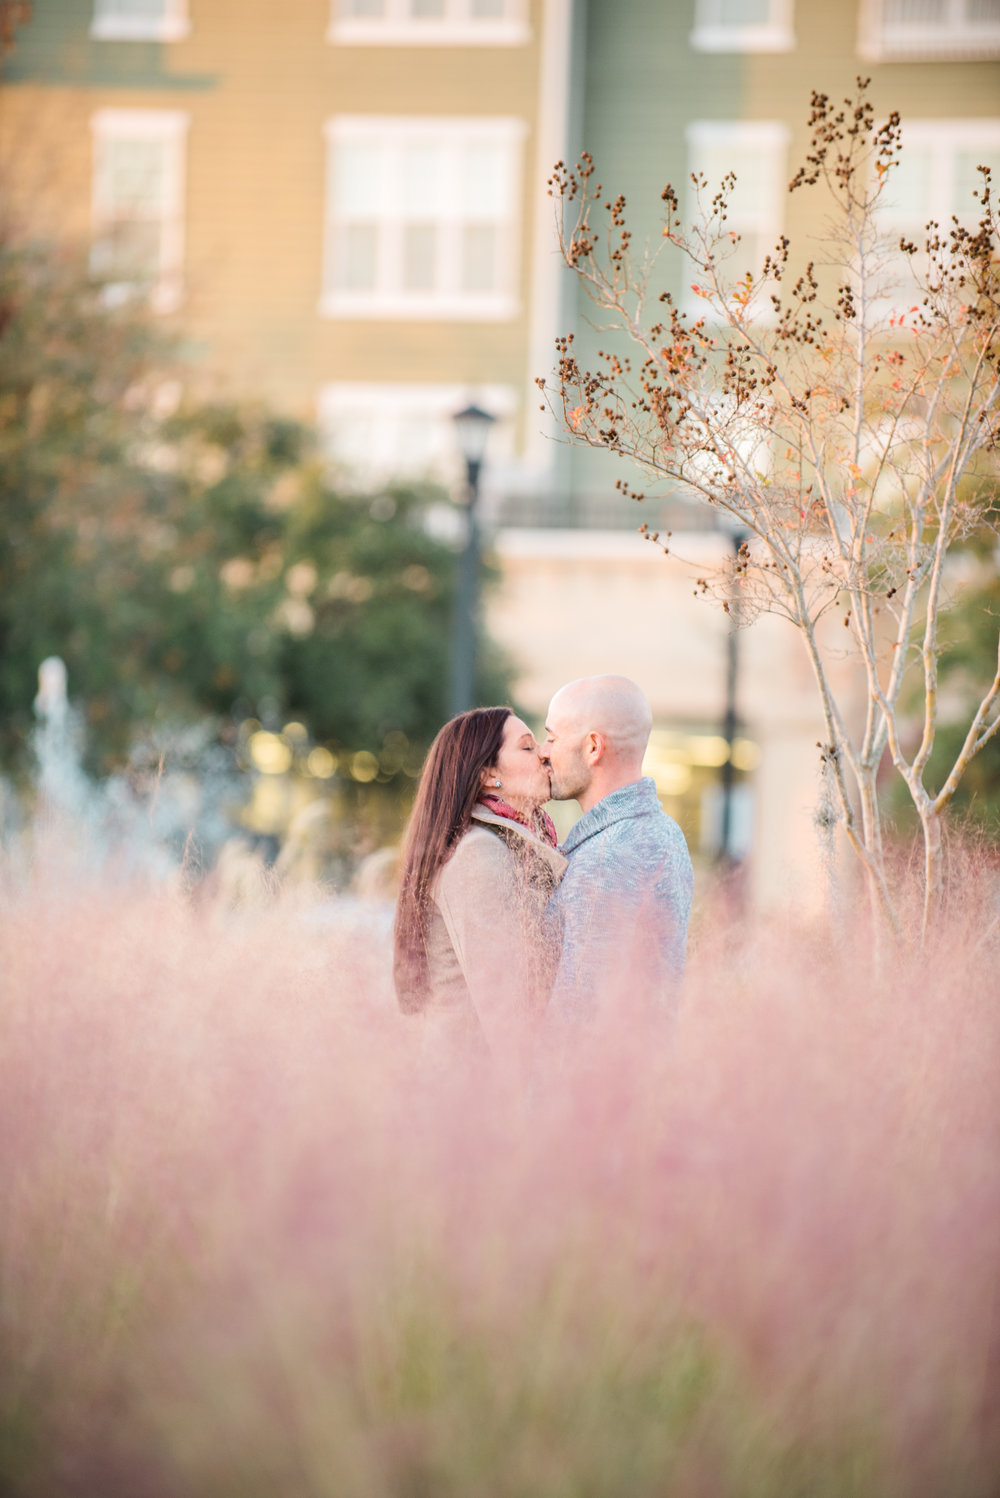 Alyssa and Michael Date Night Engagement Session-125.jpg